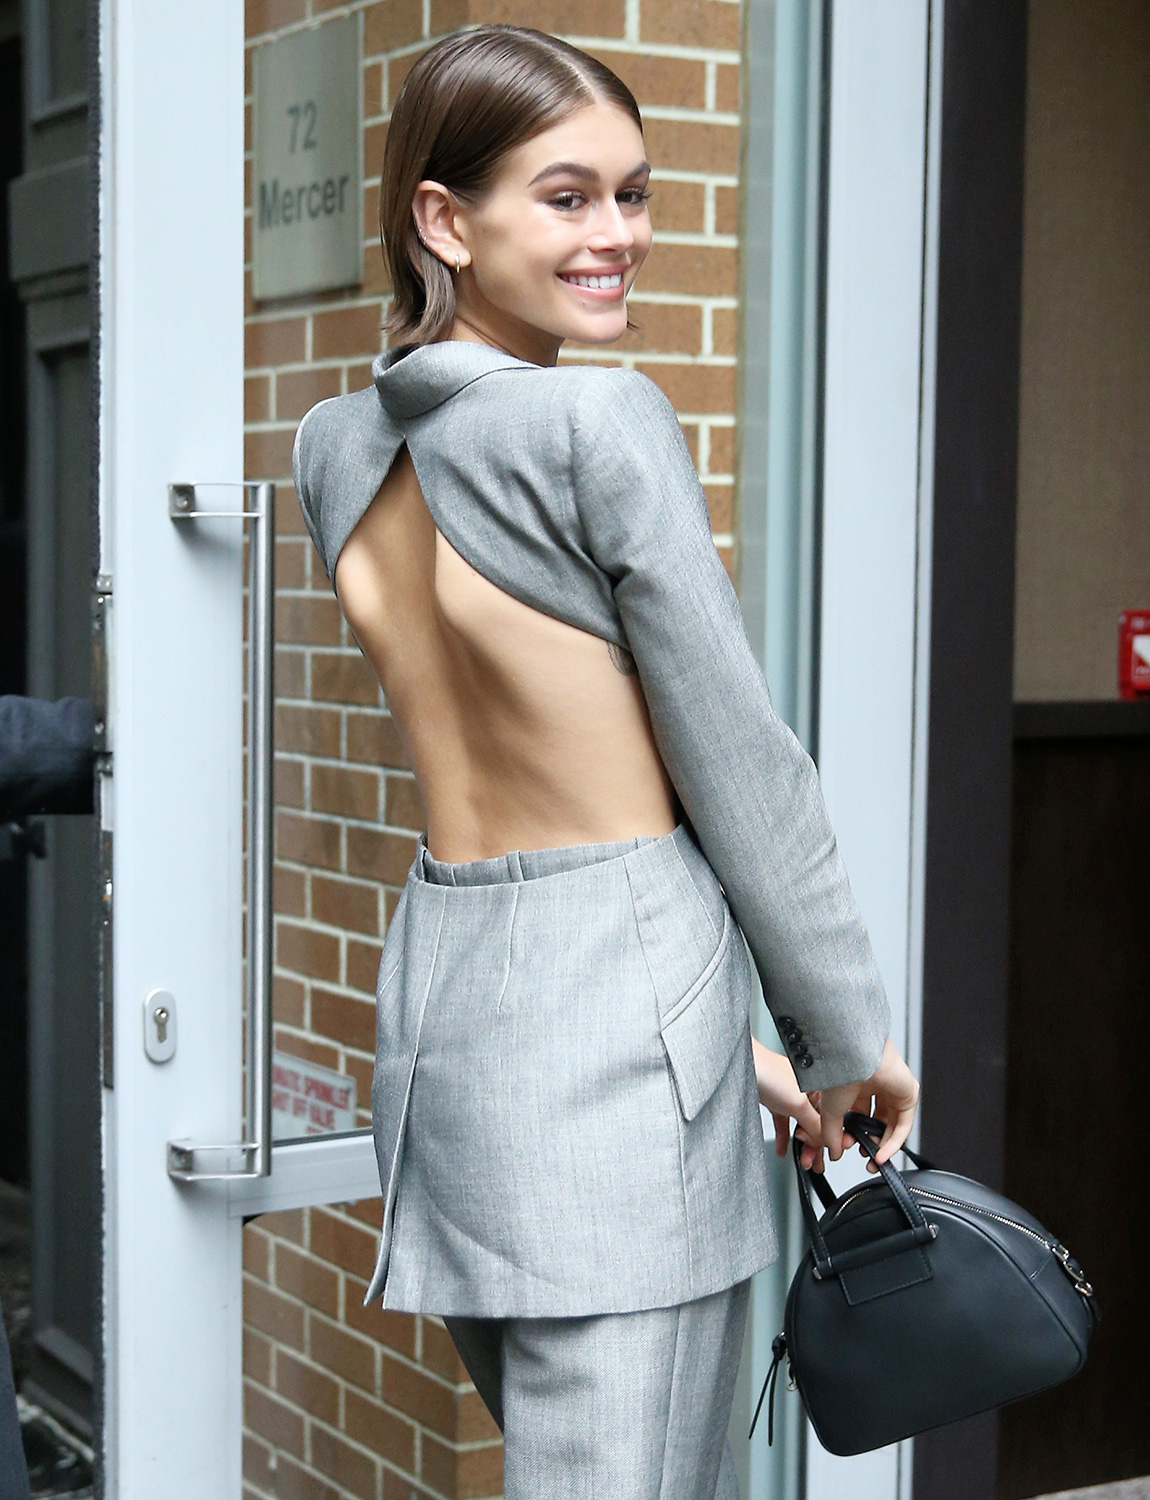 Kaia Gerber is seen wearing an open-back silver pants suit after her Jimmy Choo x Kaia appearance in New York City